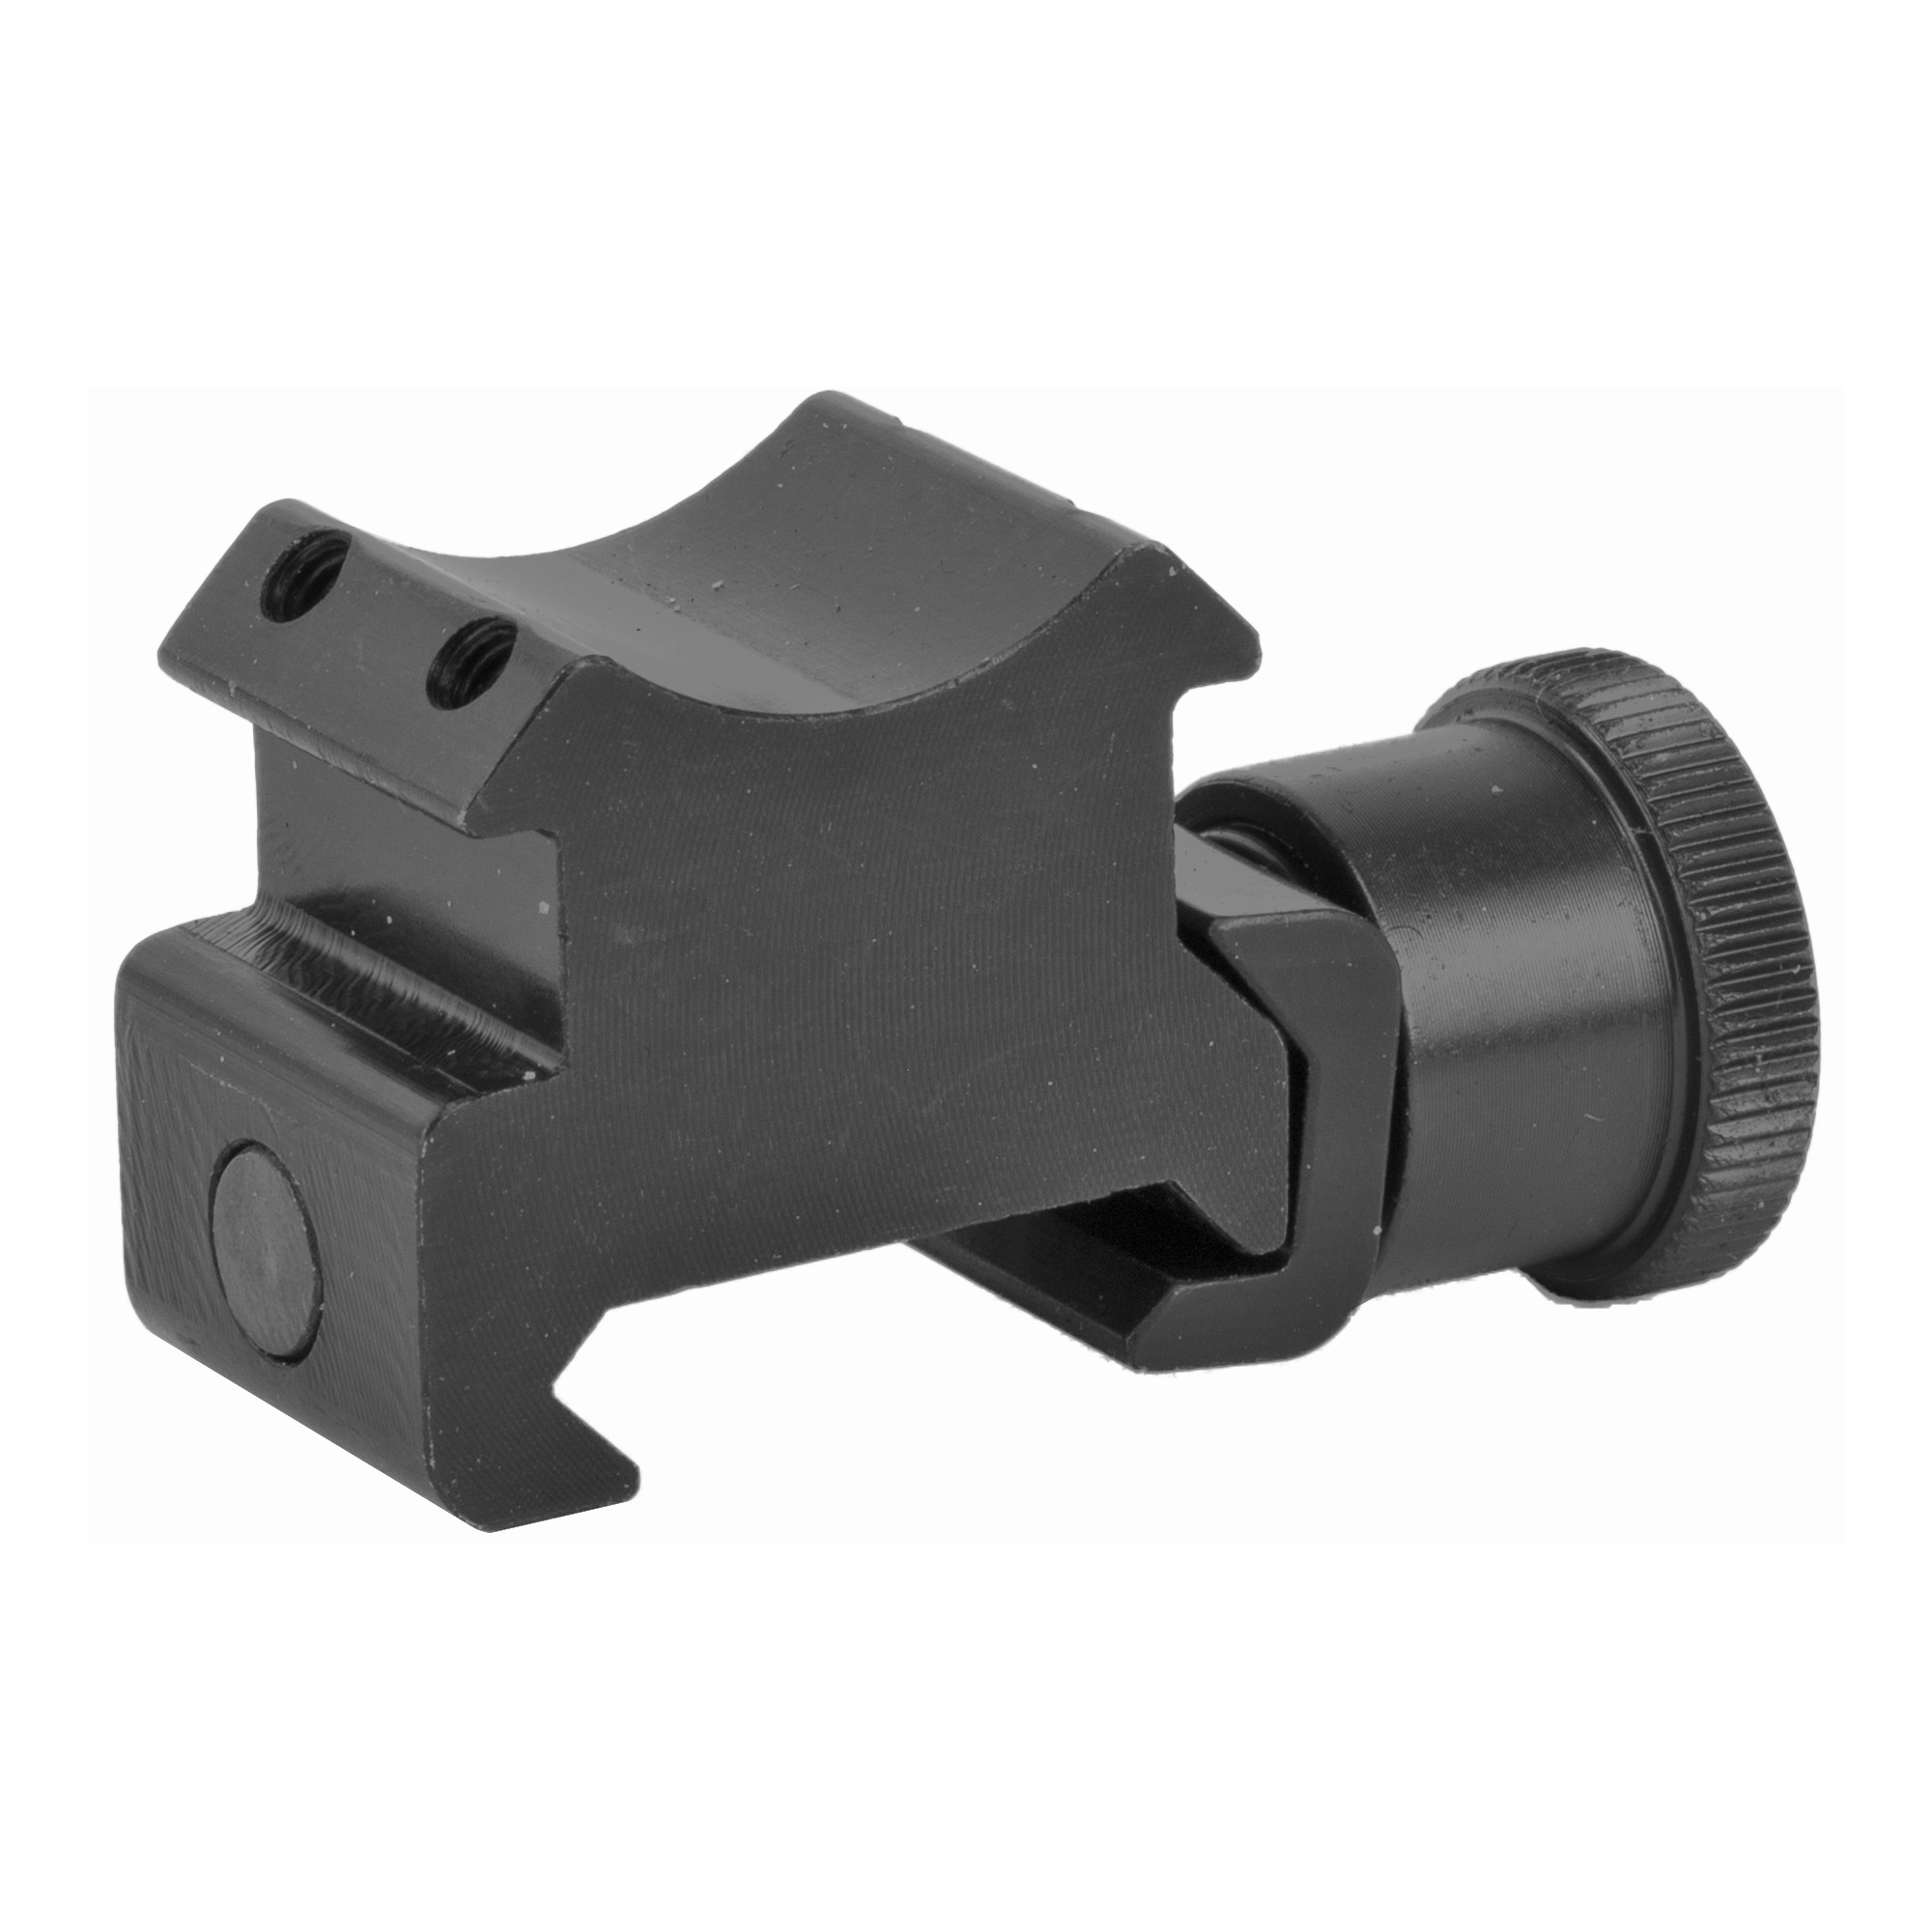 Weaver adapter made by Trijicon.